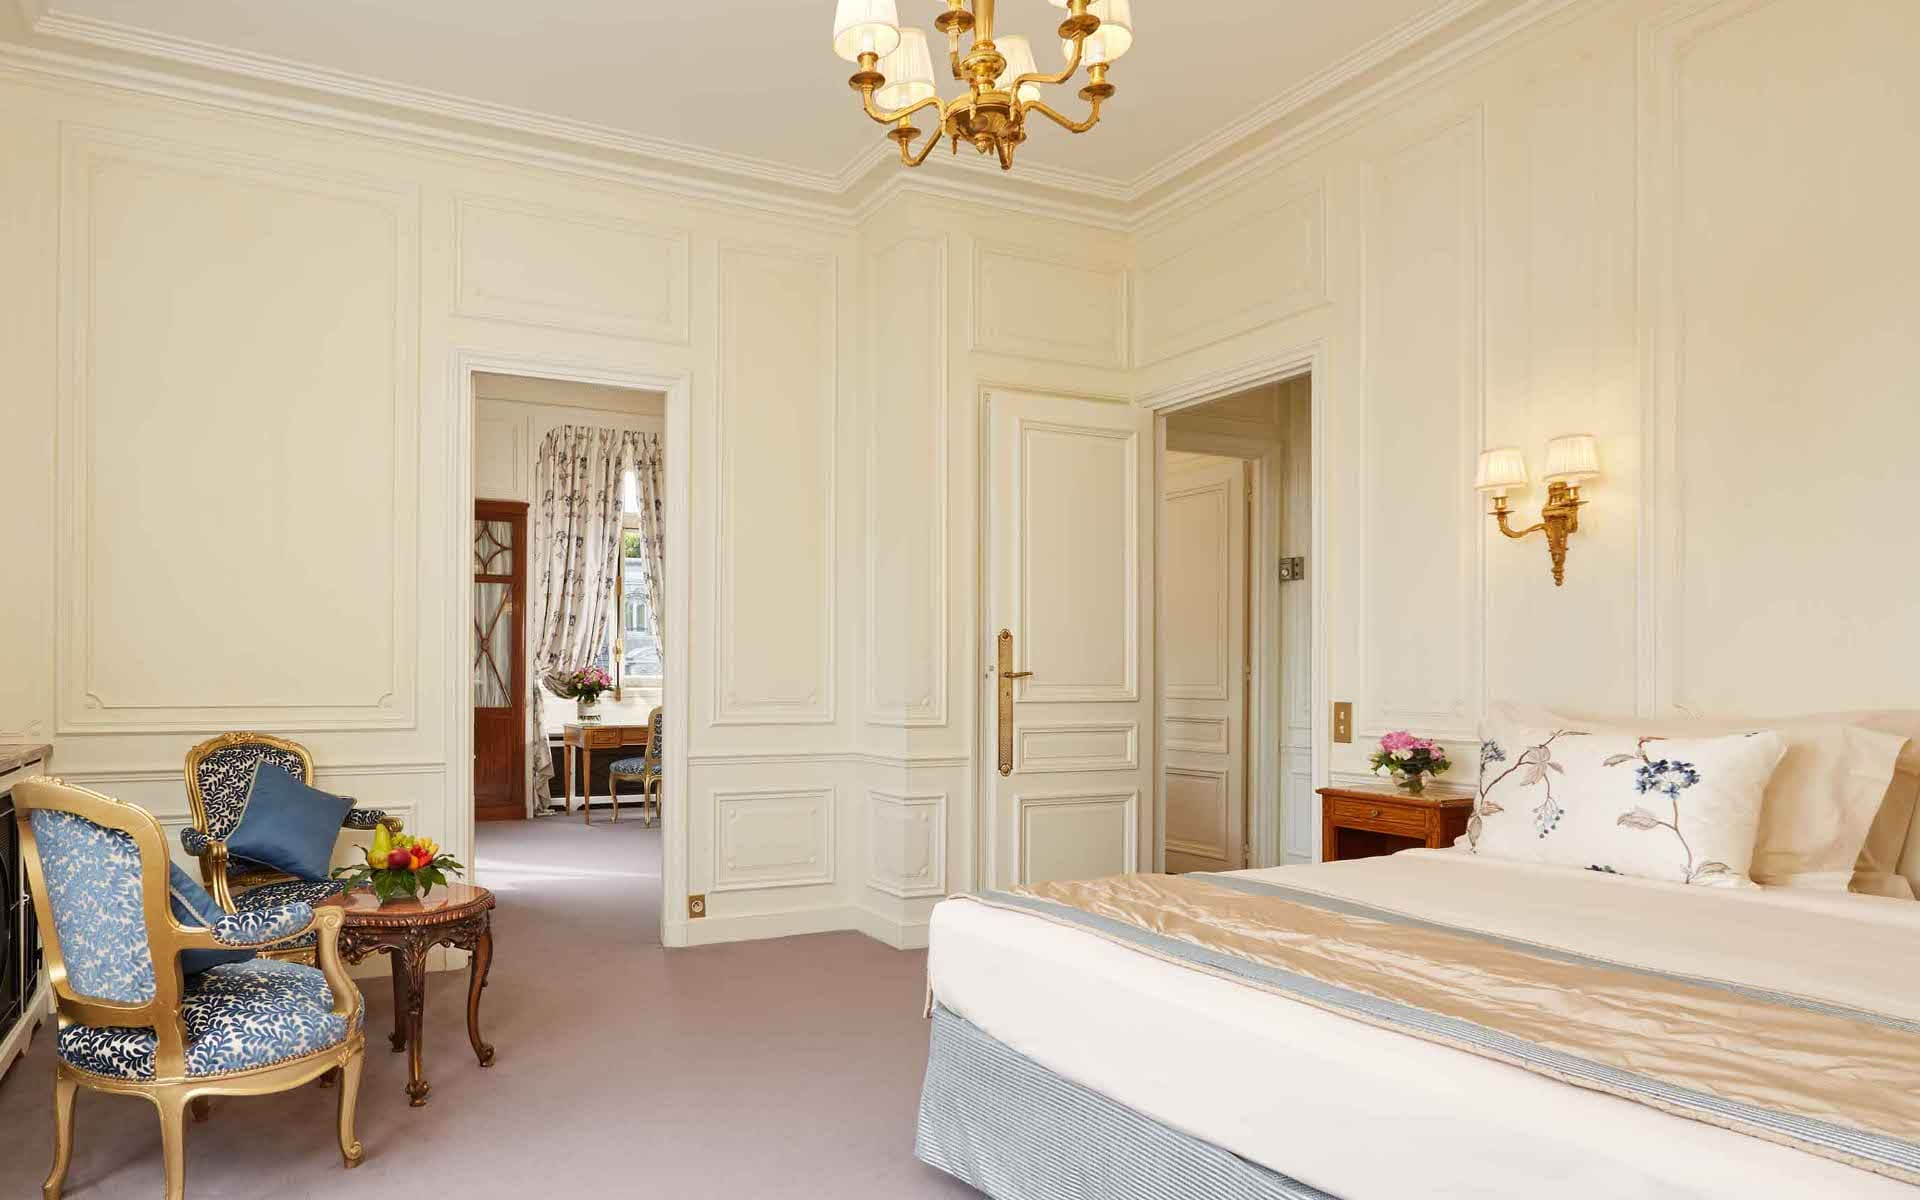 Hotel Raphael Paris Eiffel tower terrace suite